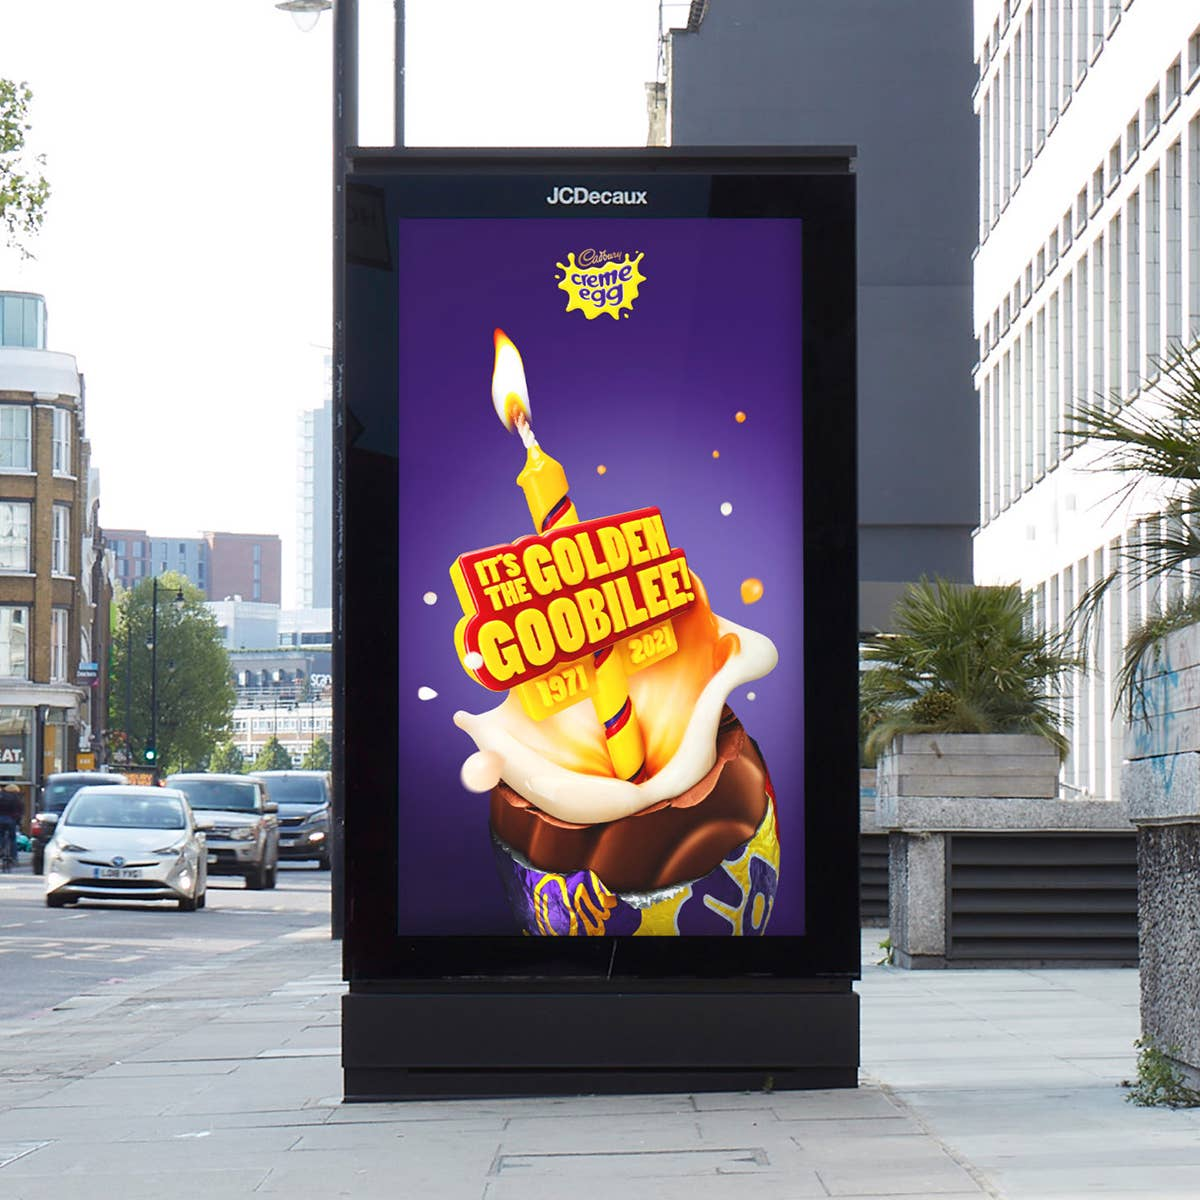 Cadbury Creme Egg celebrates 50th birthday with Golden Goobilee push